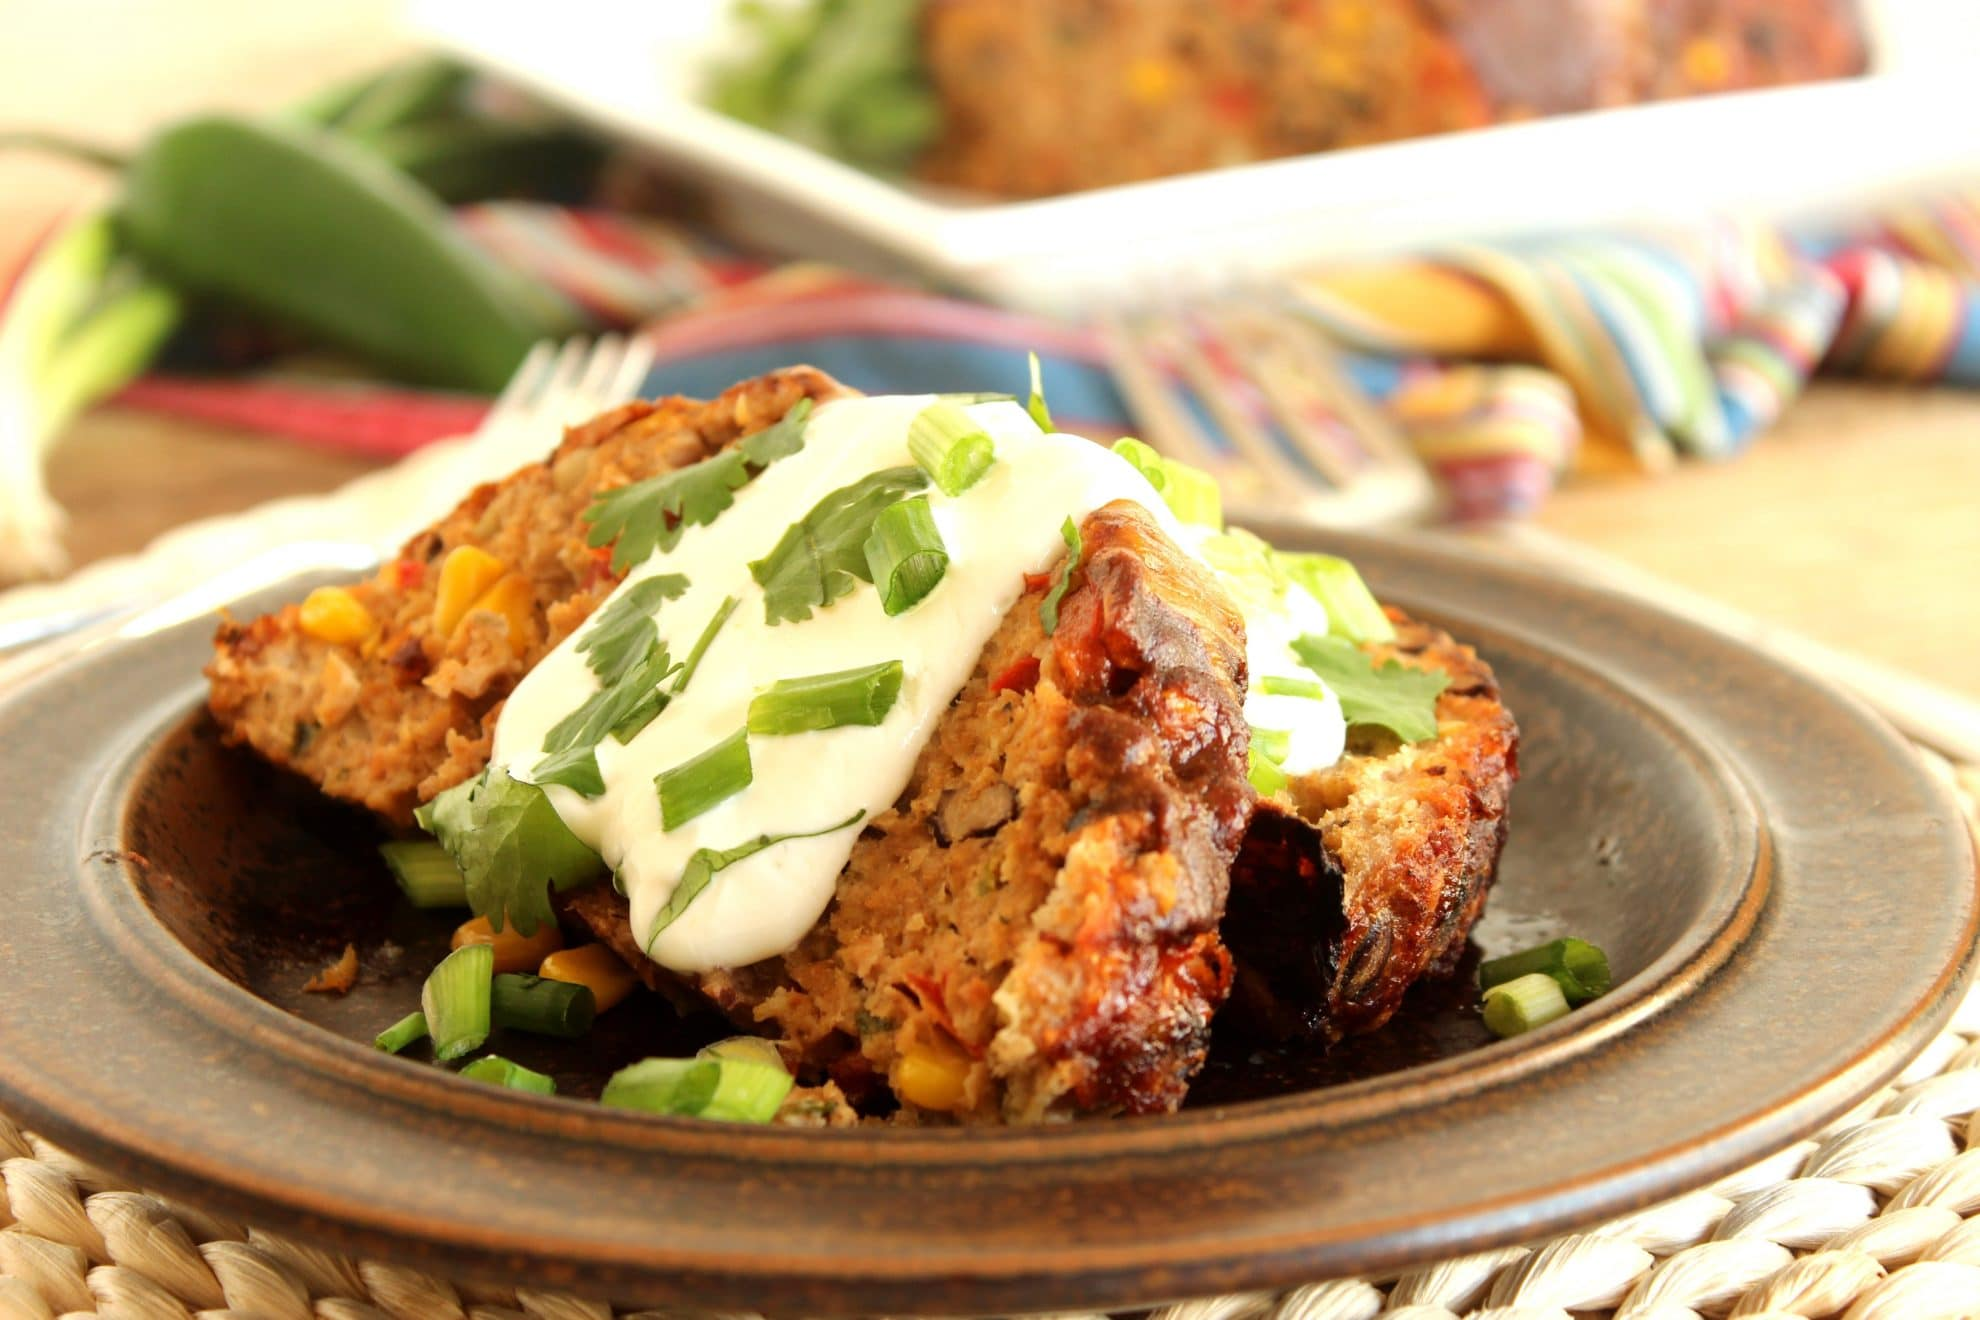 Southwestern Turkey Meatloaf | The Suburban Soapbox